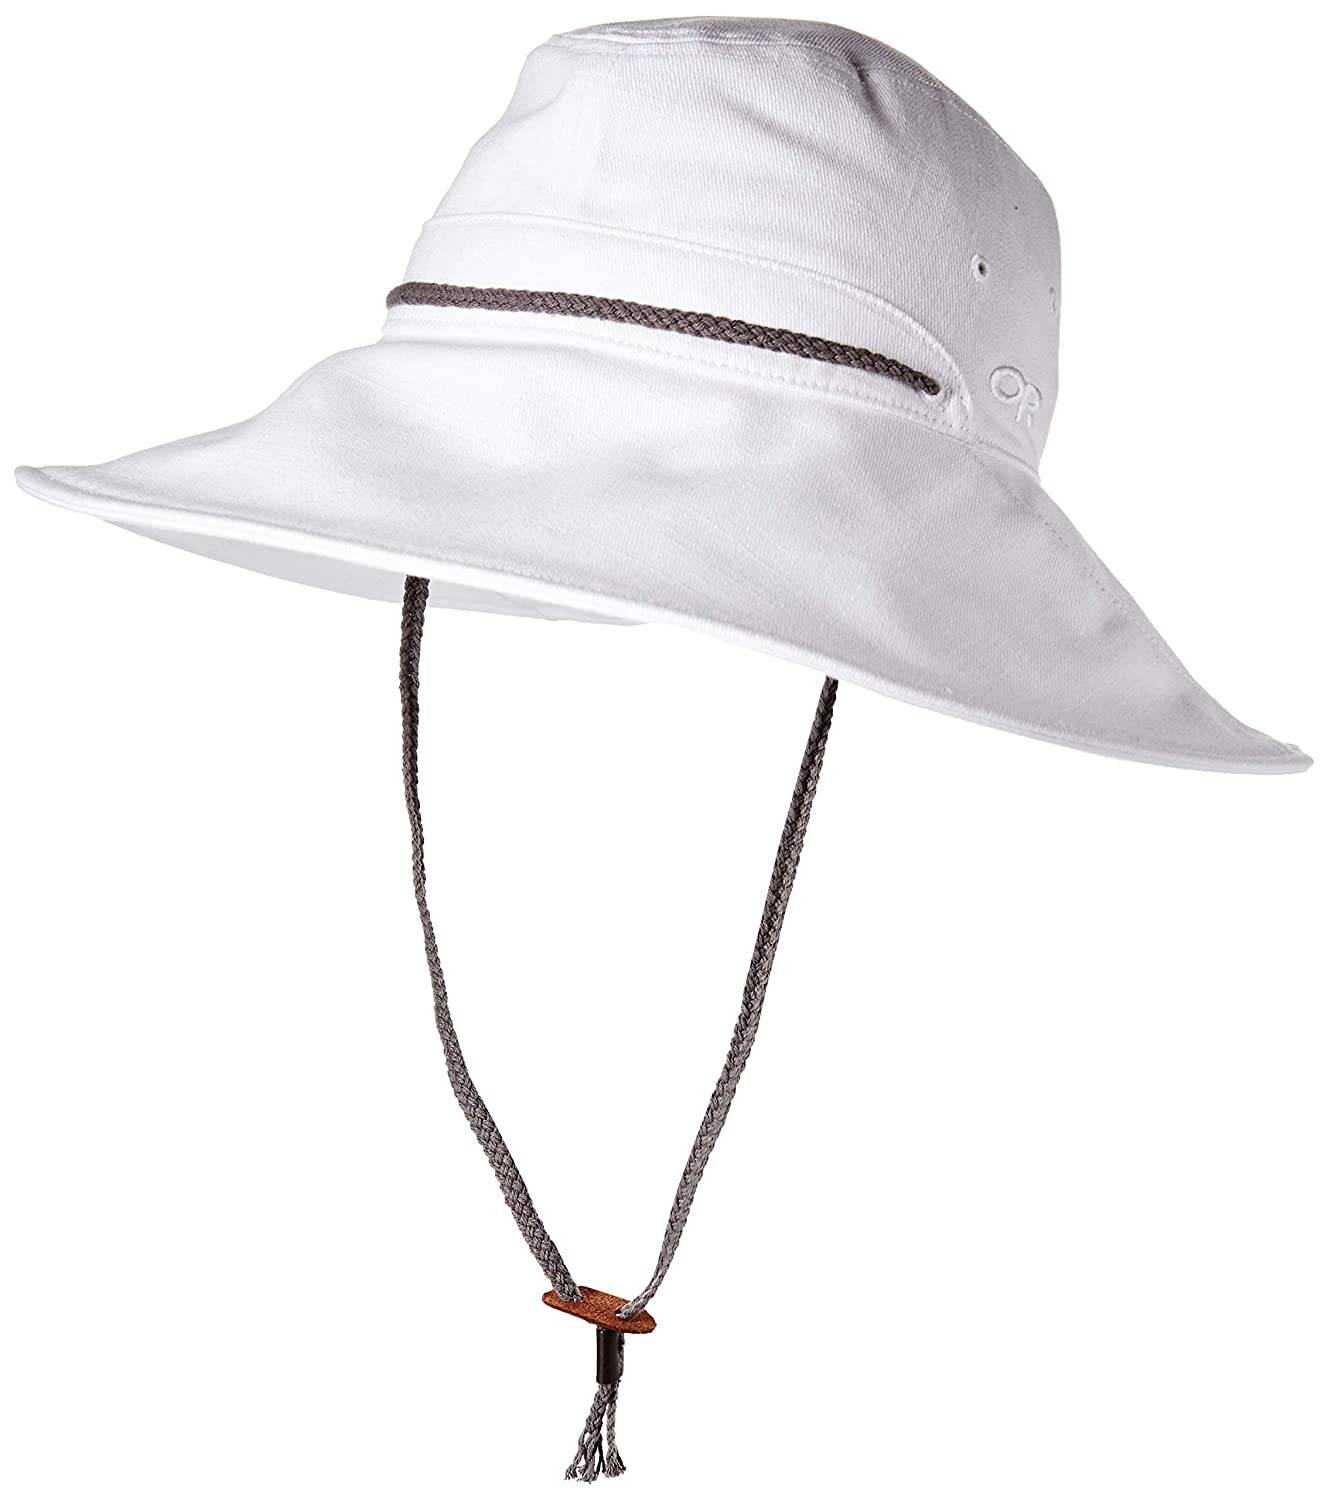 78e460b3fb69bb Amazon.com : Outdoor Research Women's Mojave Sun Hat : Clothing